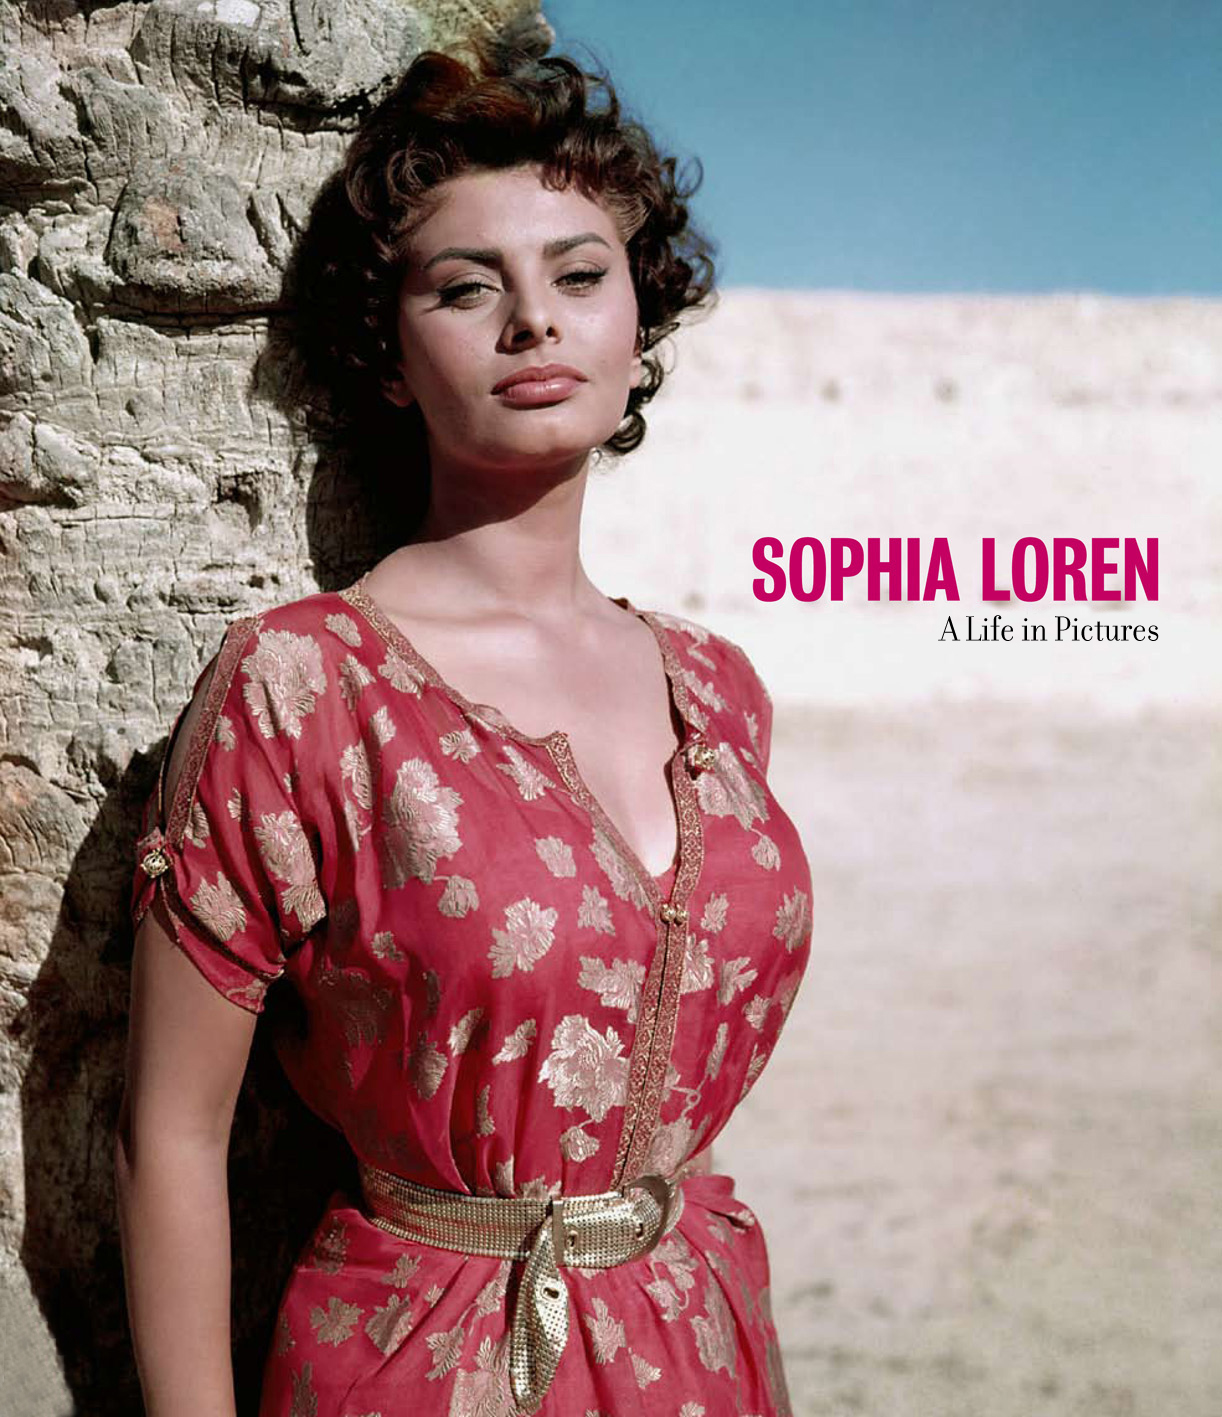 Sophia Loren A Life in Pictures